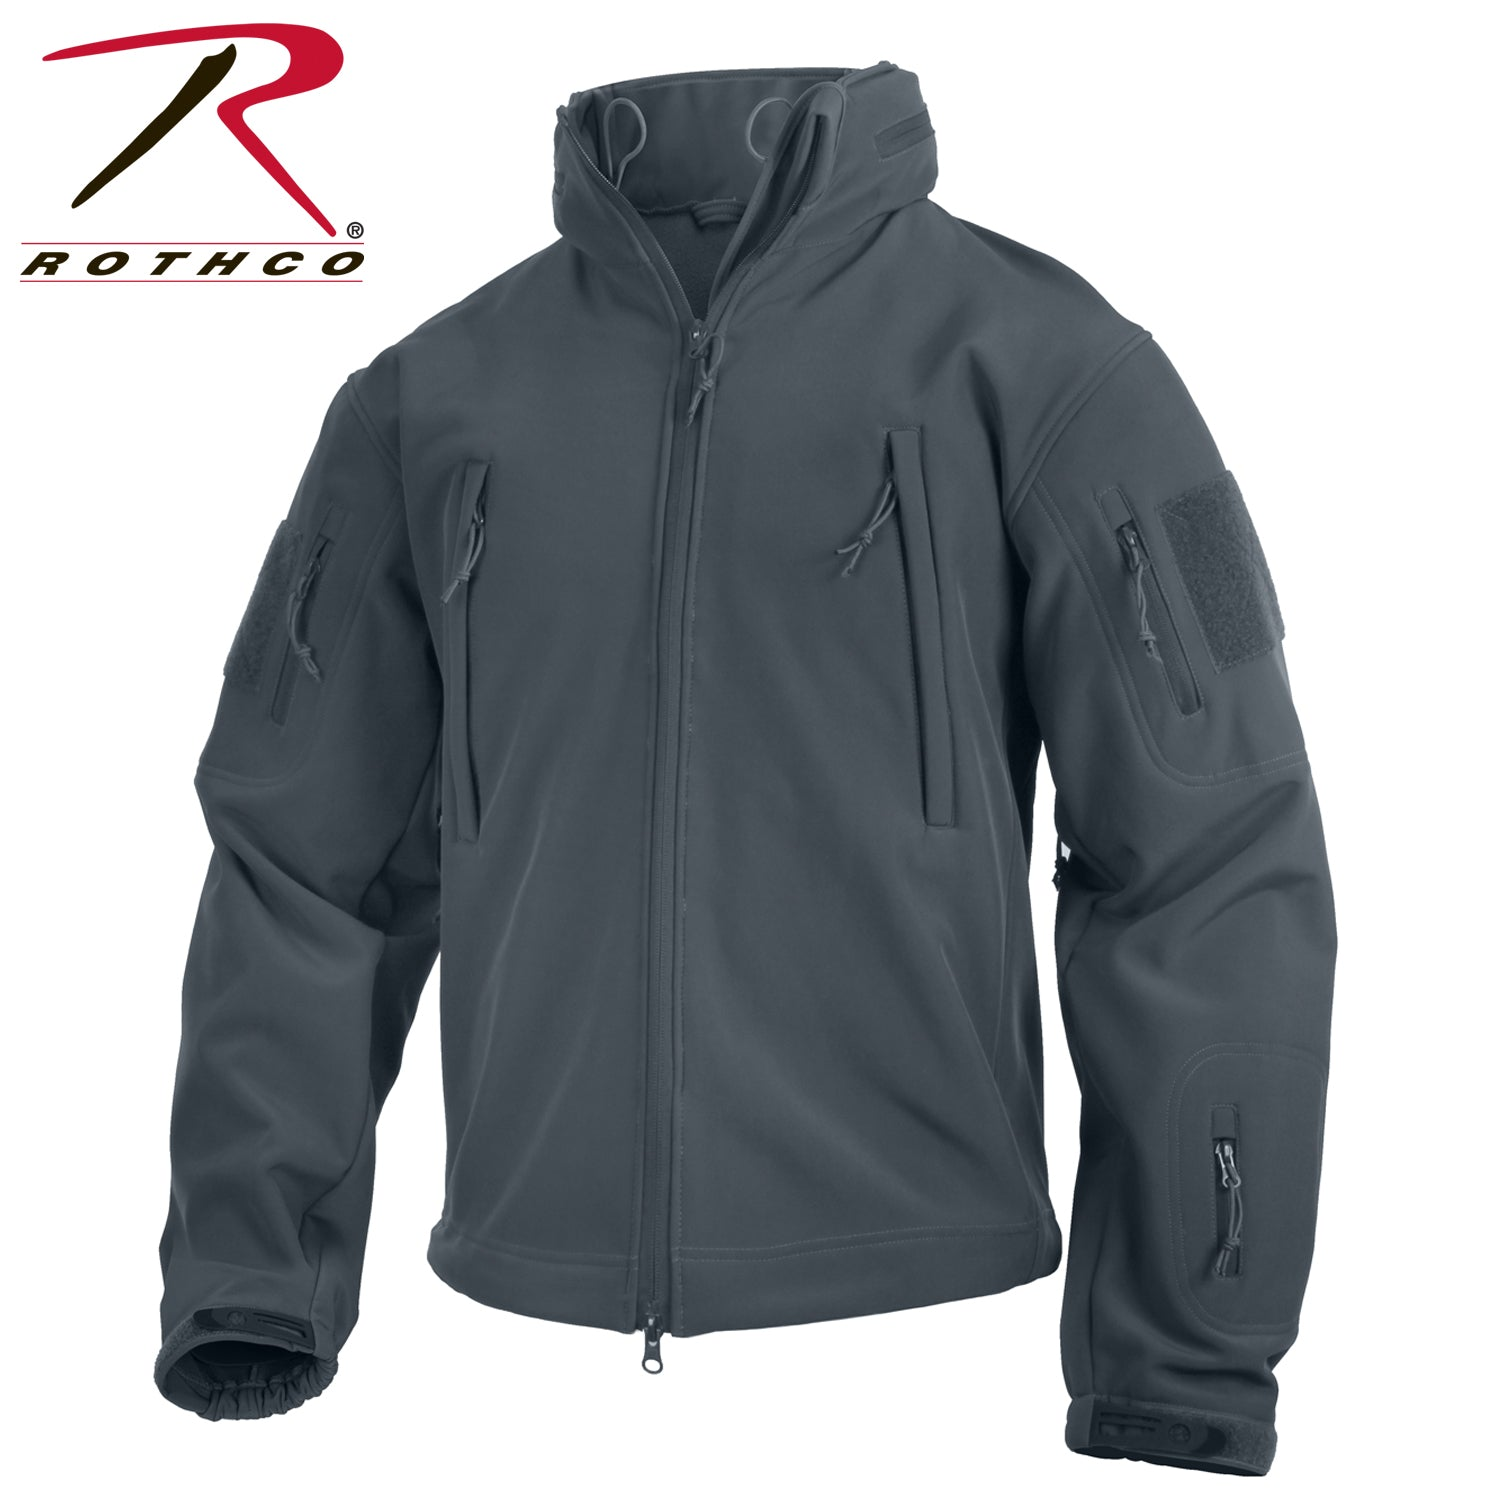 889851b46 Rothco Special Ops Tactical Soft Shell Coat or Jacket Item 9767